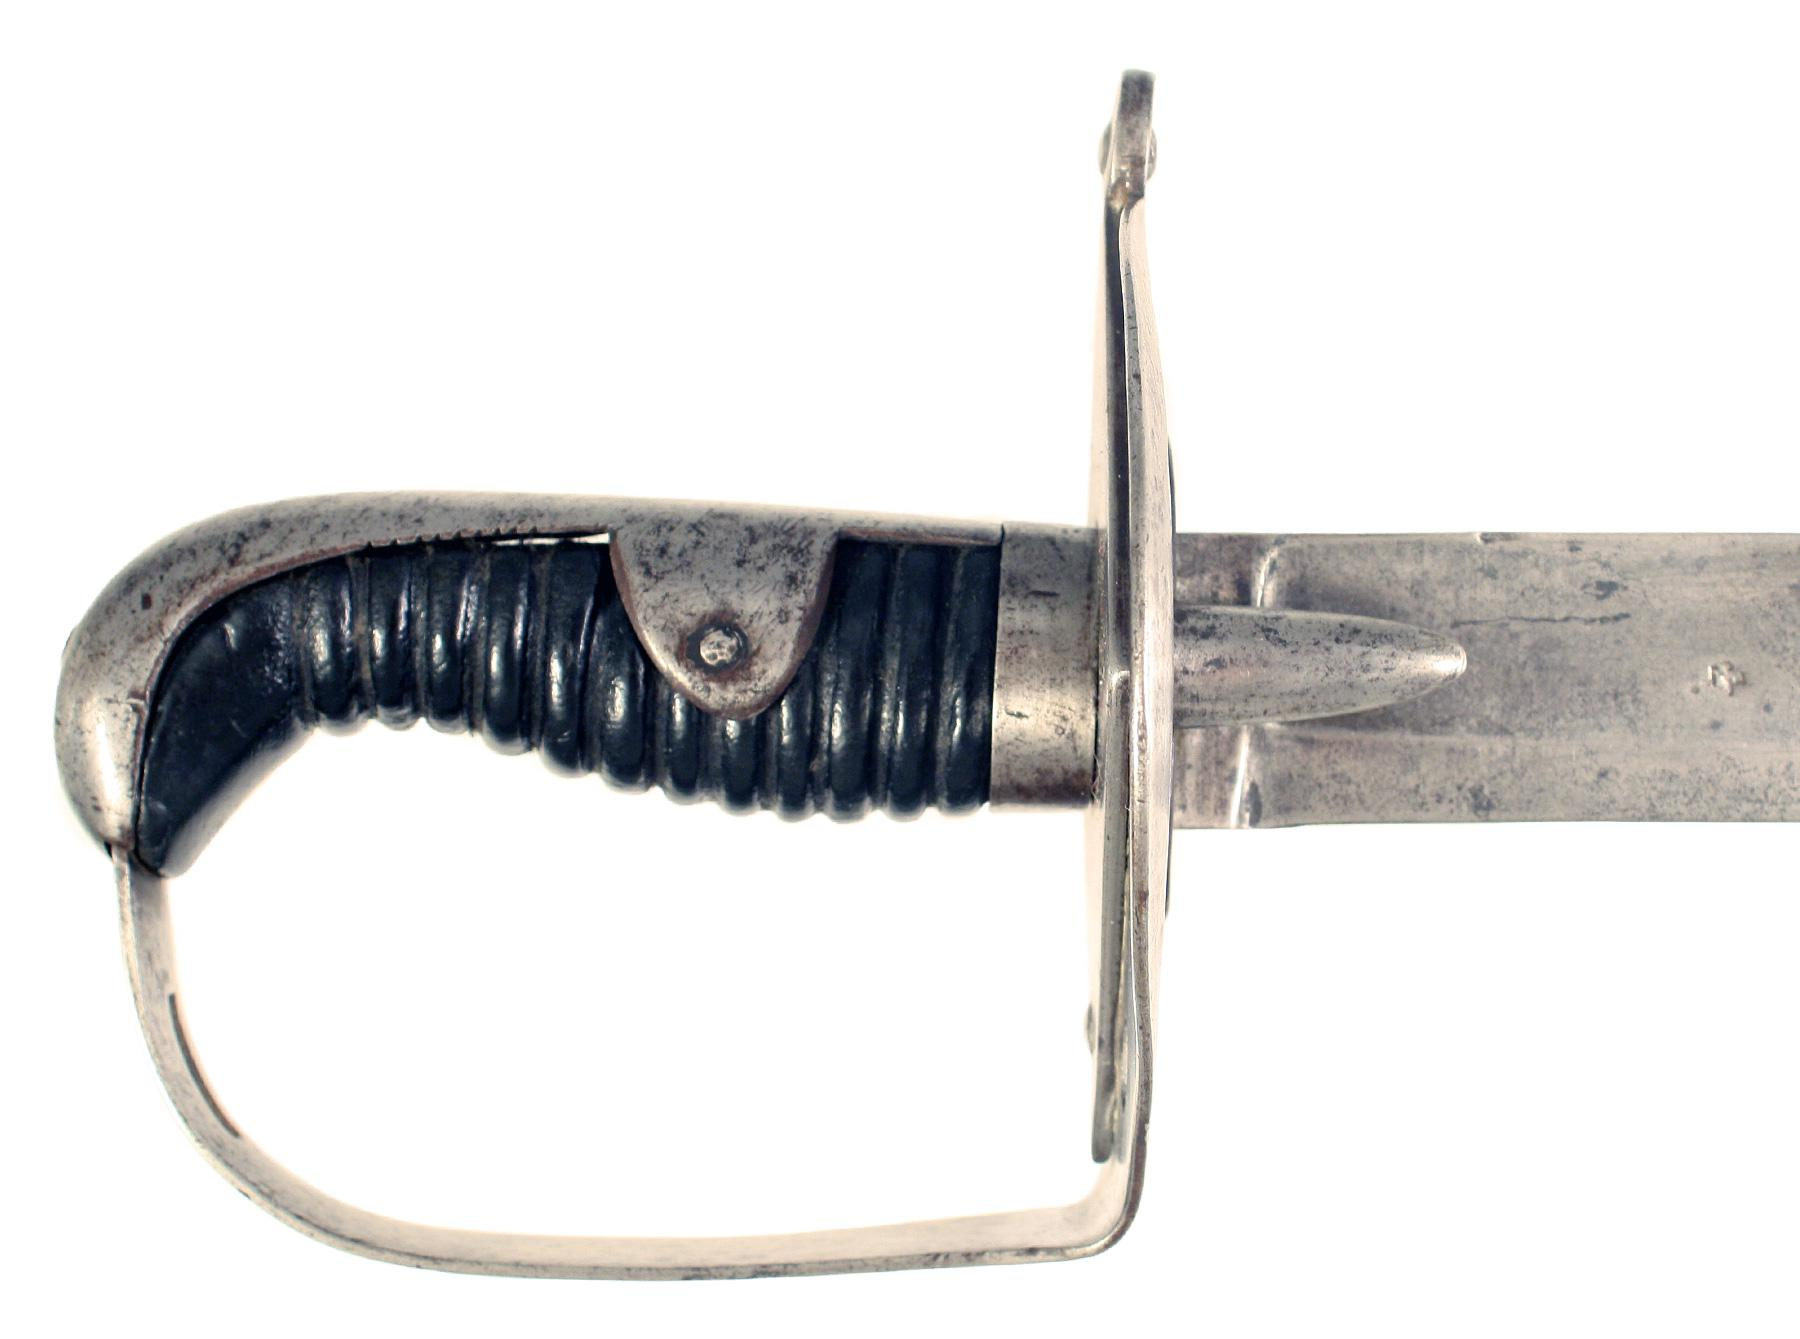 A 1796 Heavy Cavalry Troopers Sword